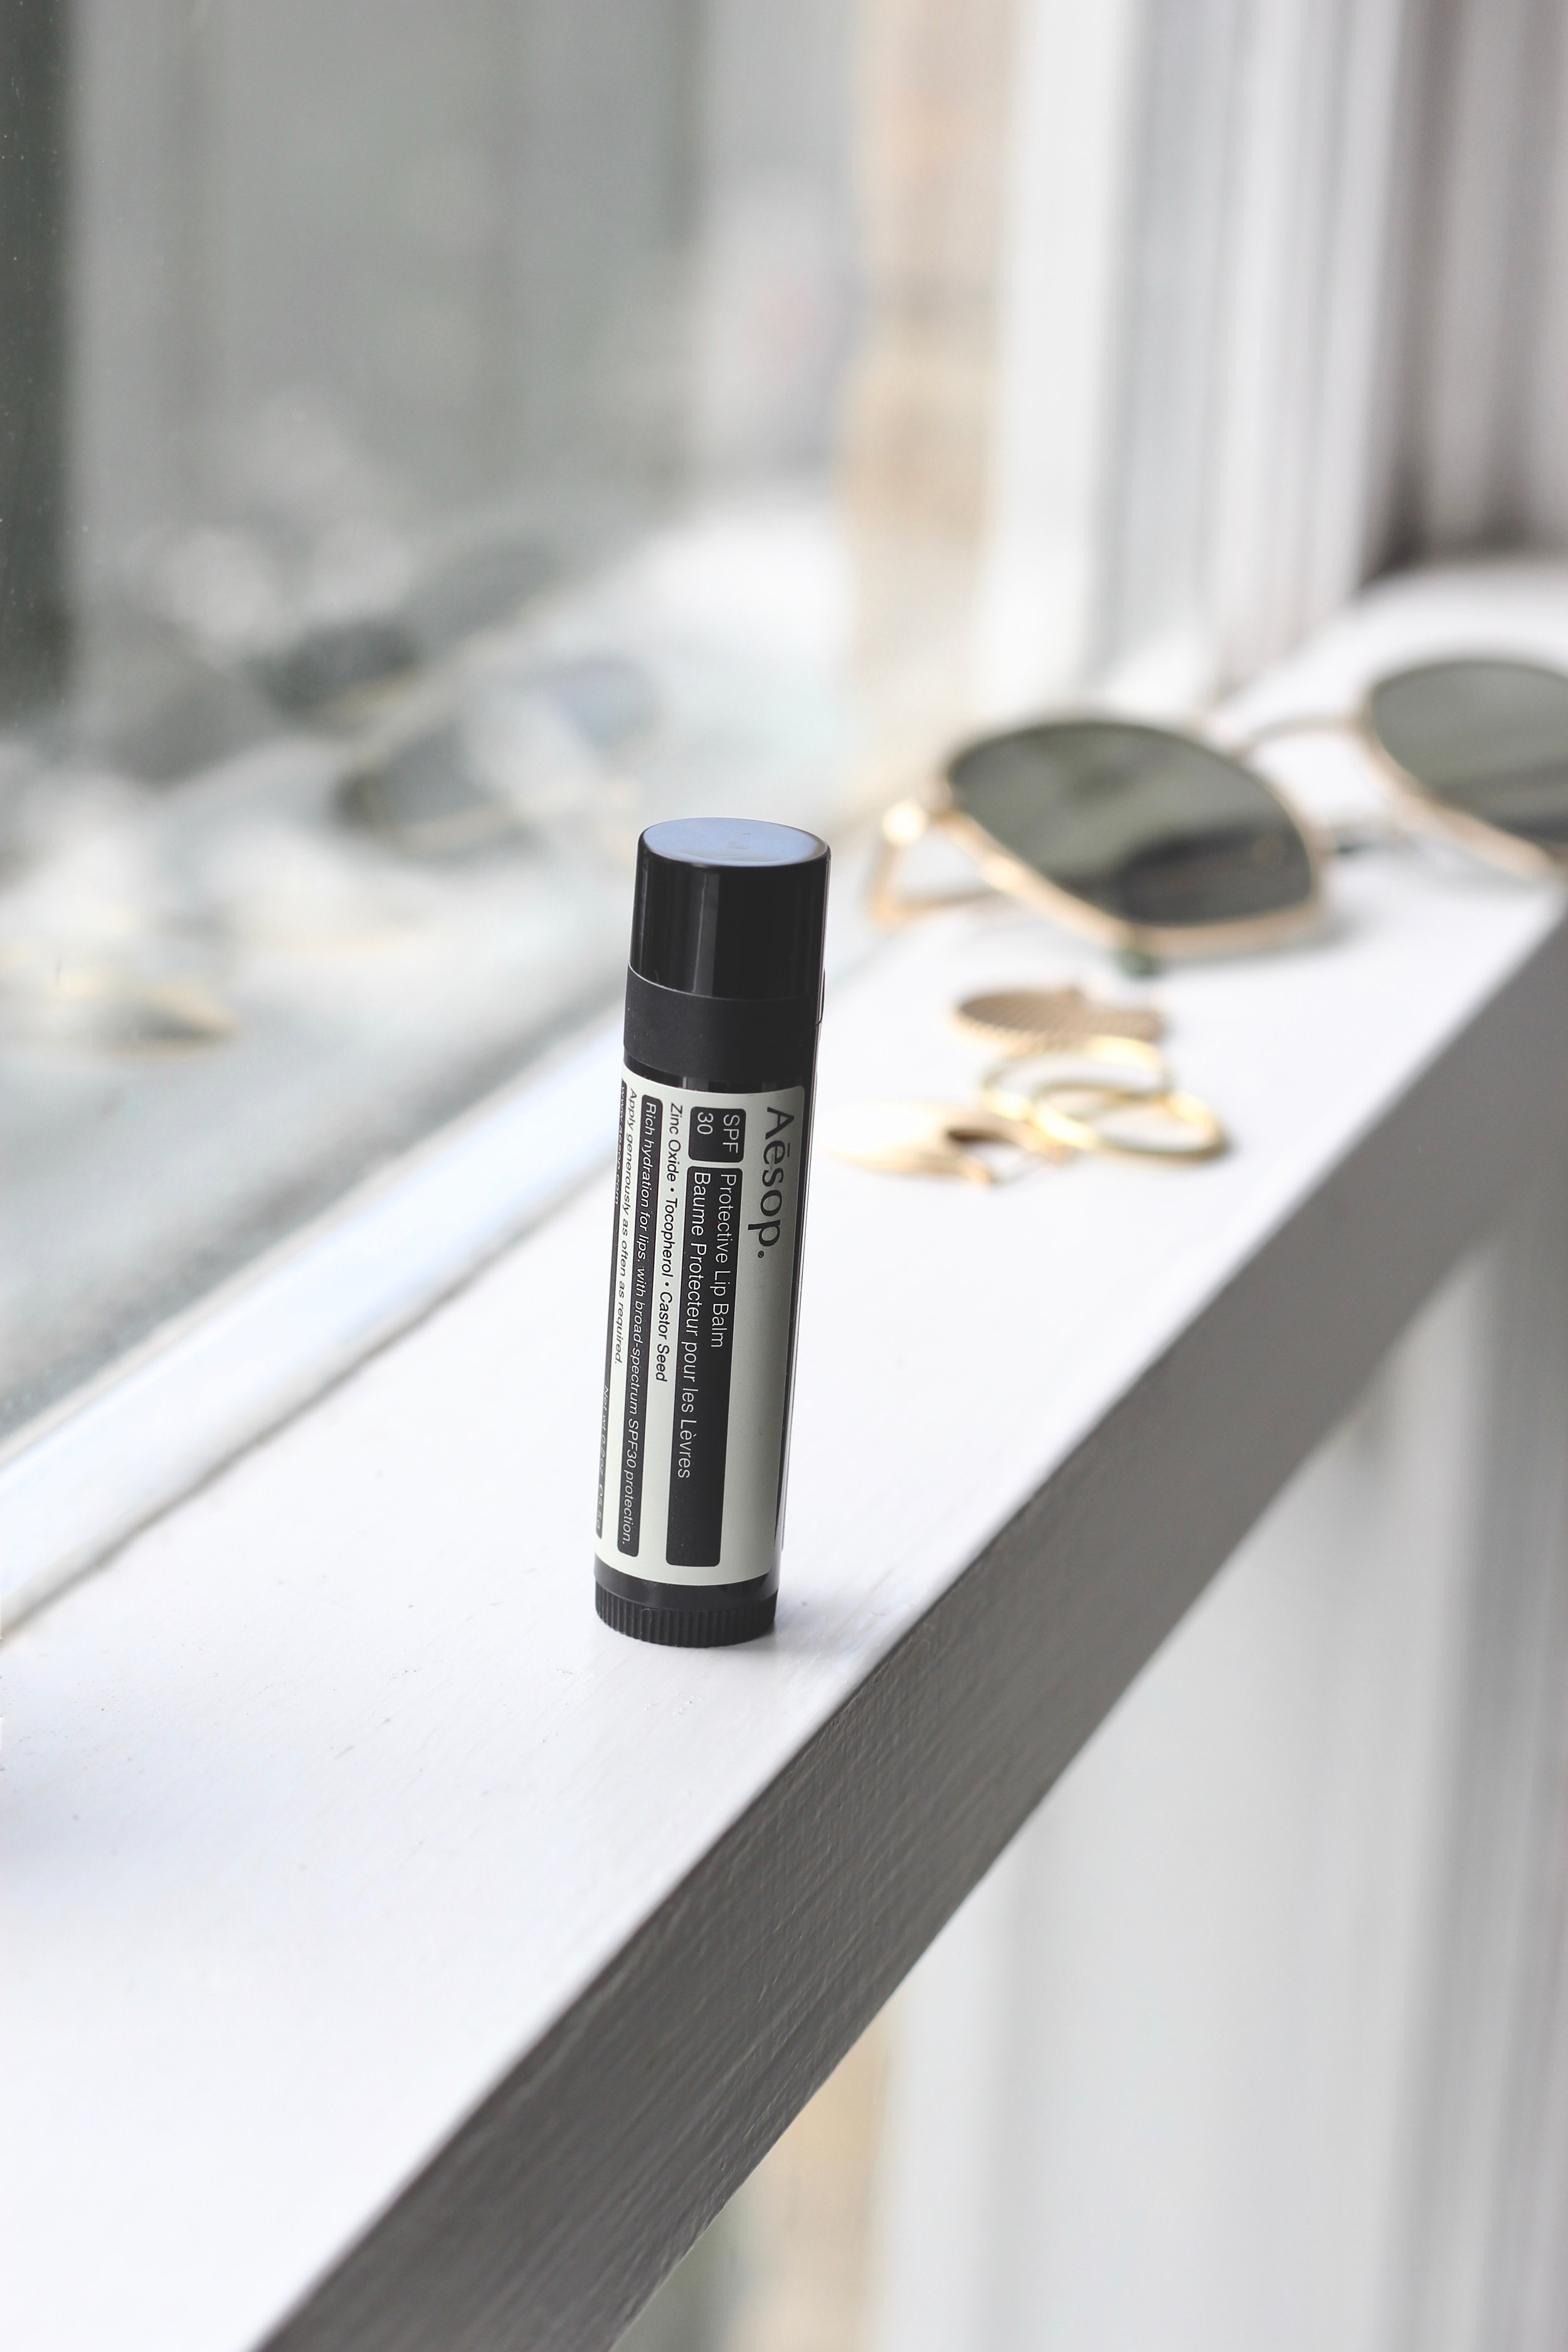 Don't forget about your lips! - This lip balm from Aesop contains SPF 30, and is made with zinc oxide, tocopherol, caster seed and jojoba. Keeping the lips soft and healthy!Shop this product here.